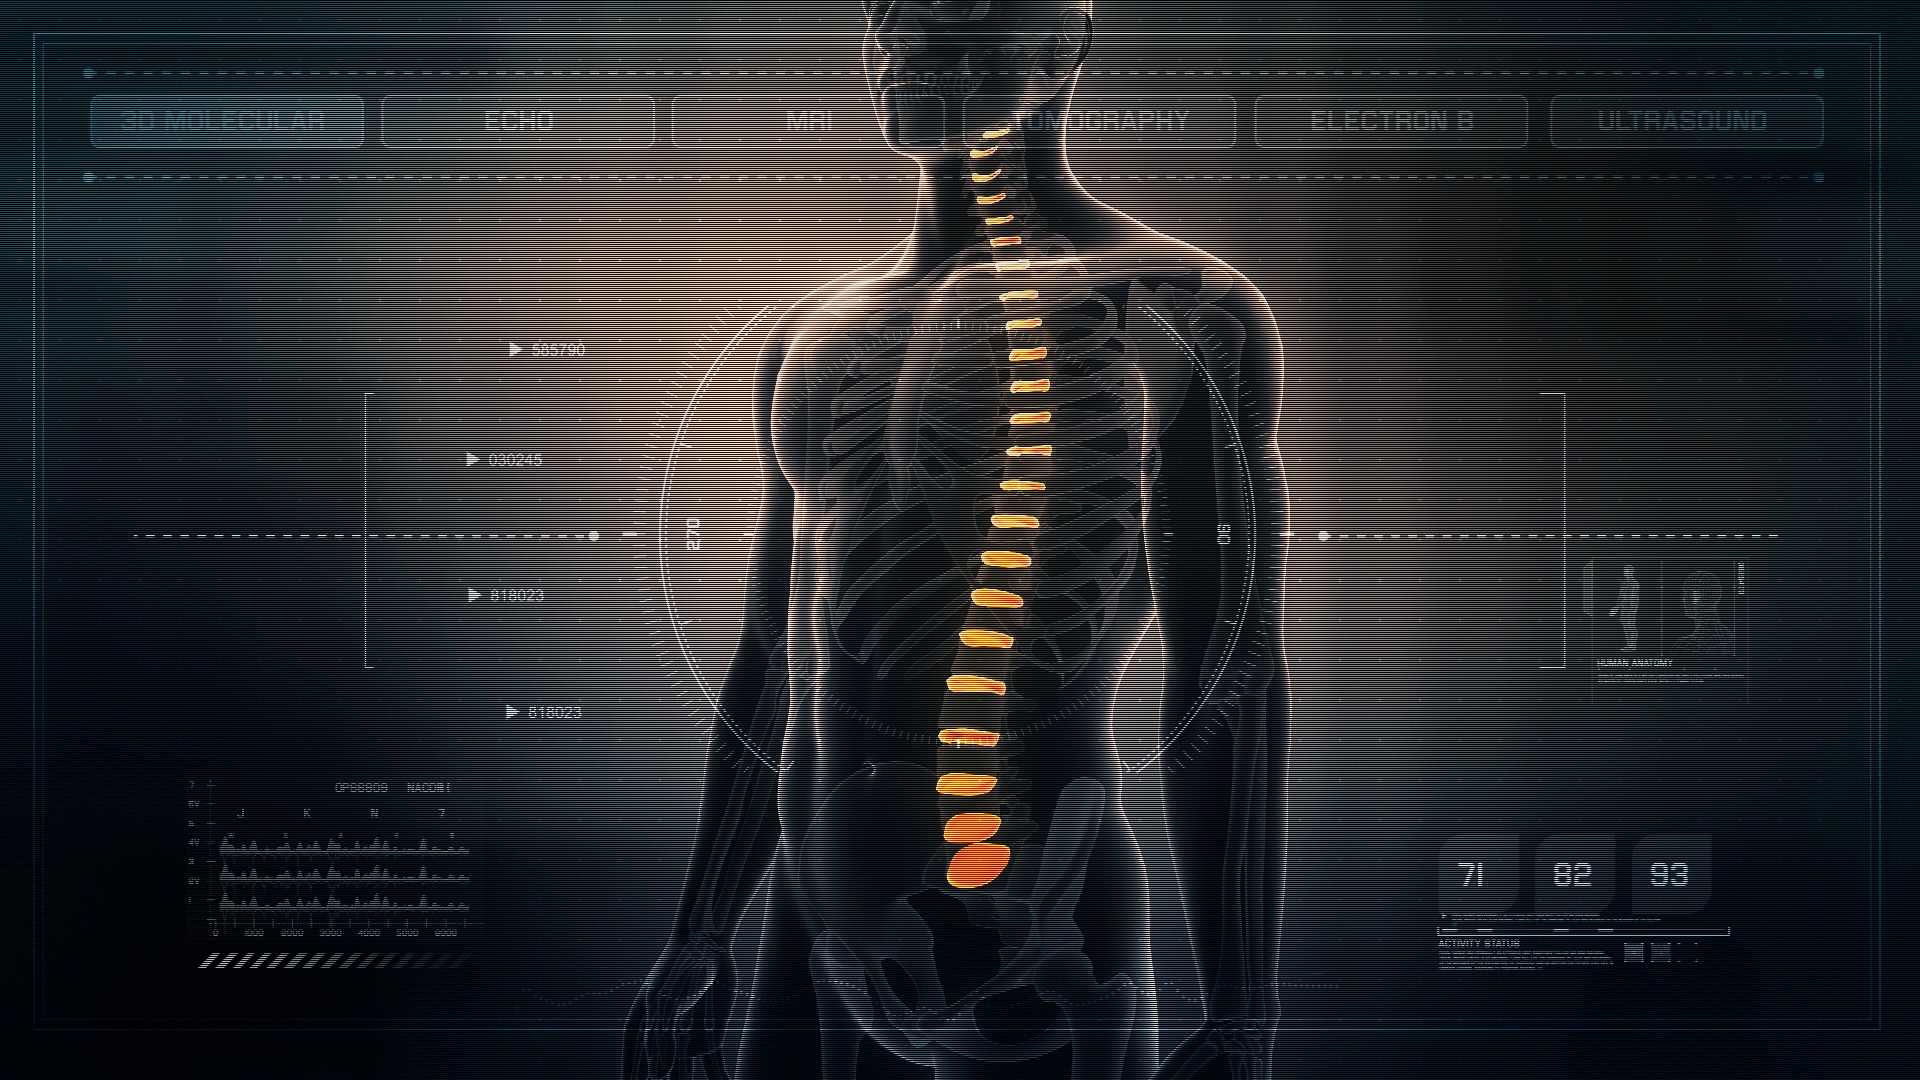 Futuristic Interface Display Of Human Male Spinal Discs On Medical